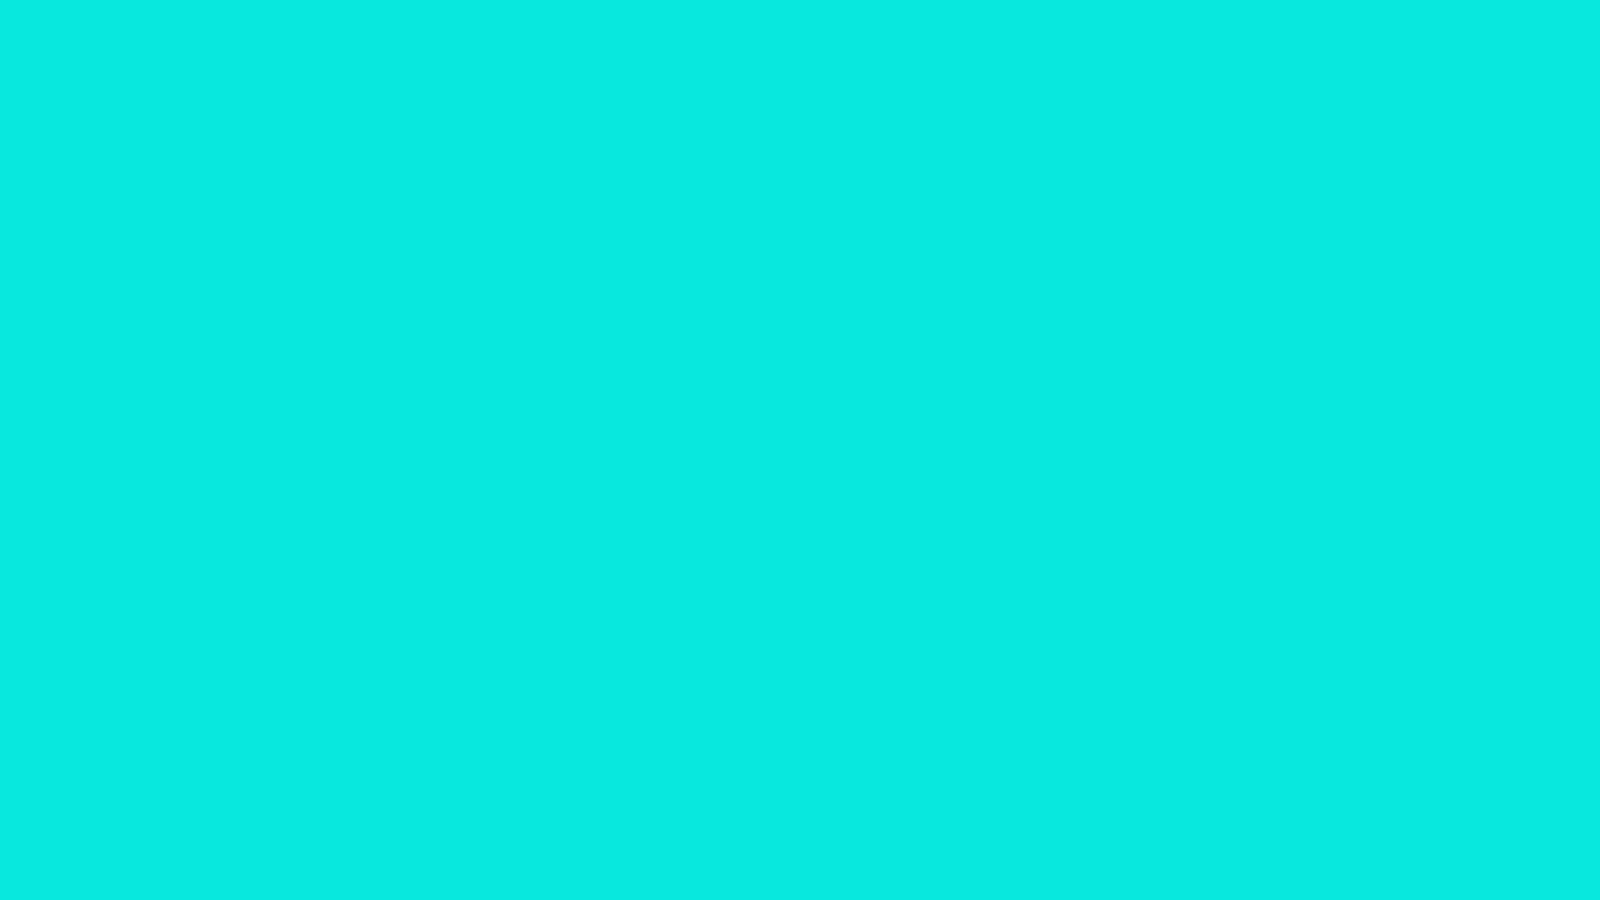 1600x900 Bright Turquoise Solid Color Background